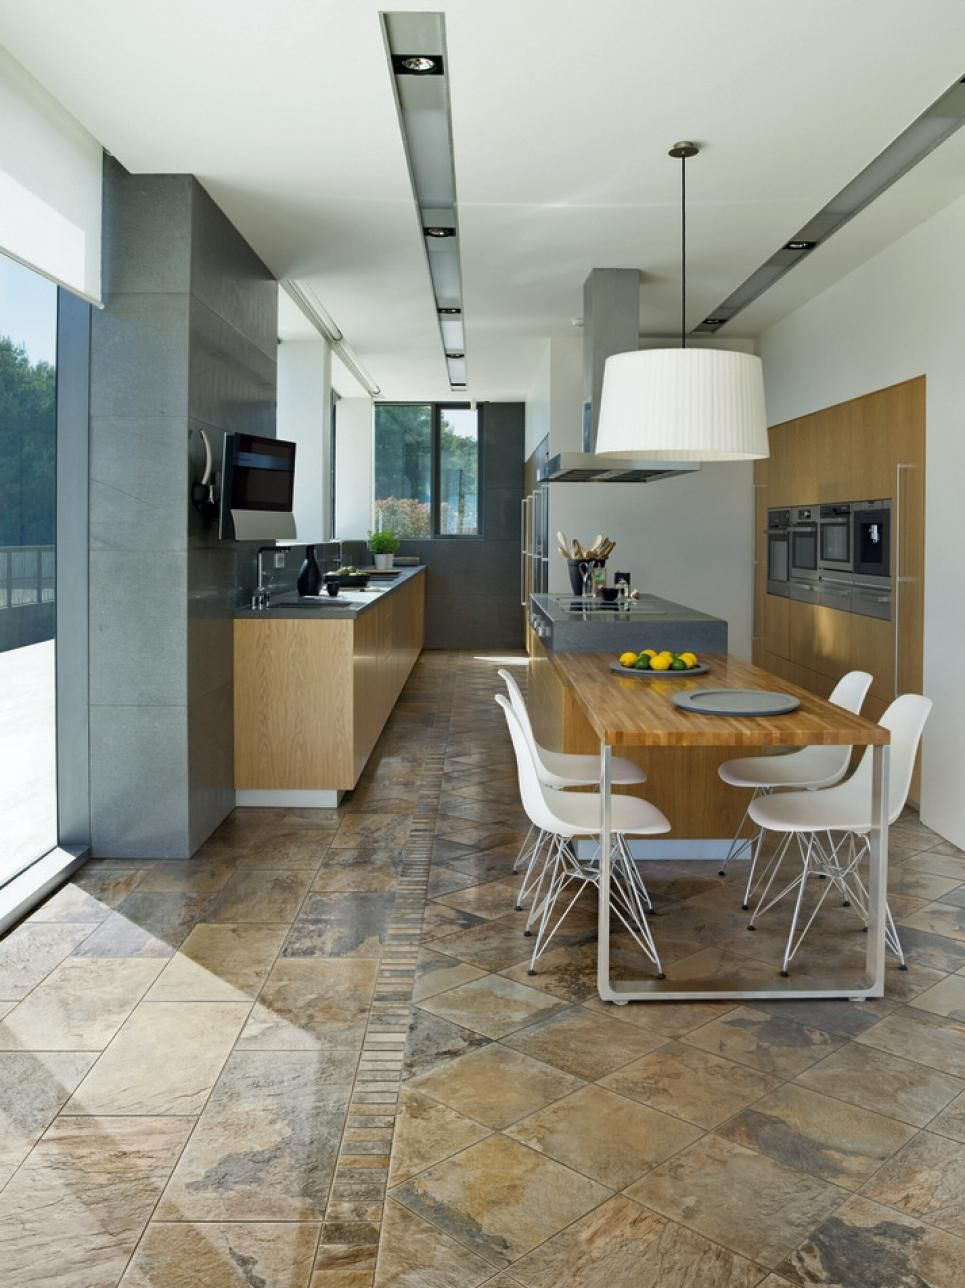 Tile Flooring Options  Flooring Options Hgtv And Natural Stones Brilliant Kitchen Floor Options Design Ideas